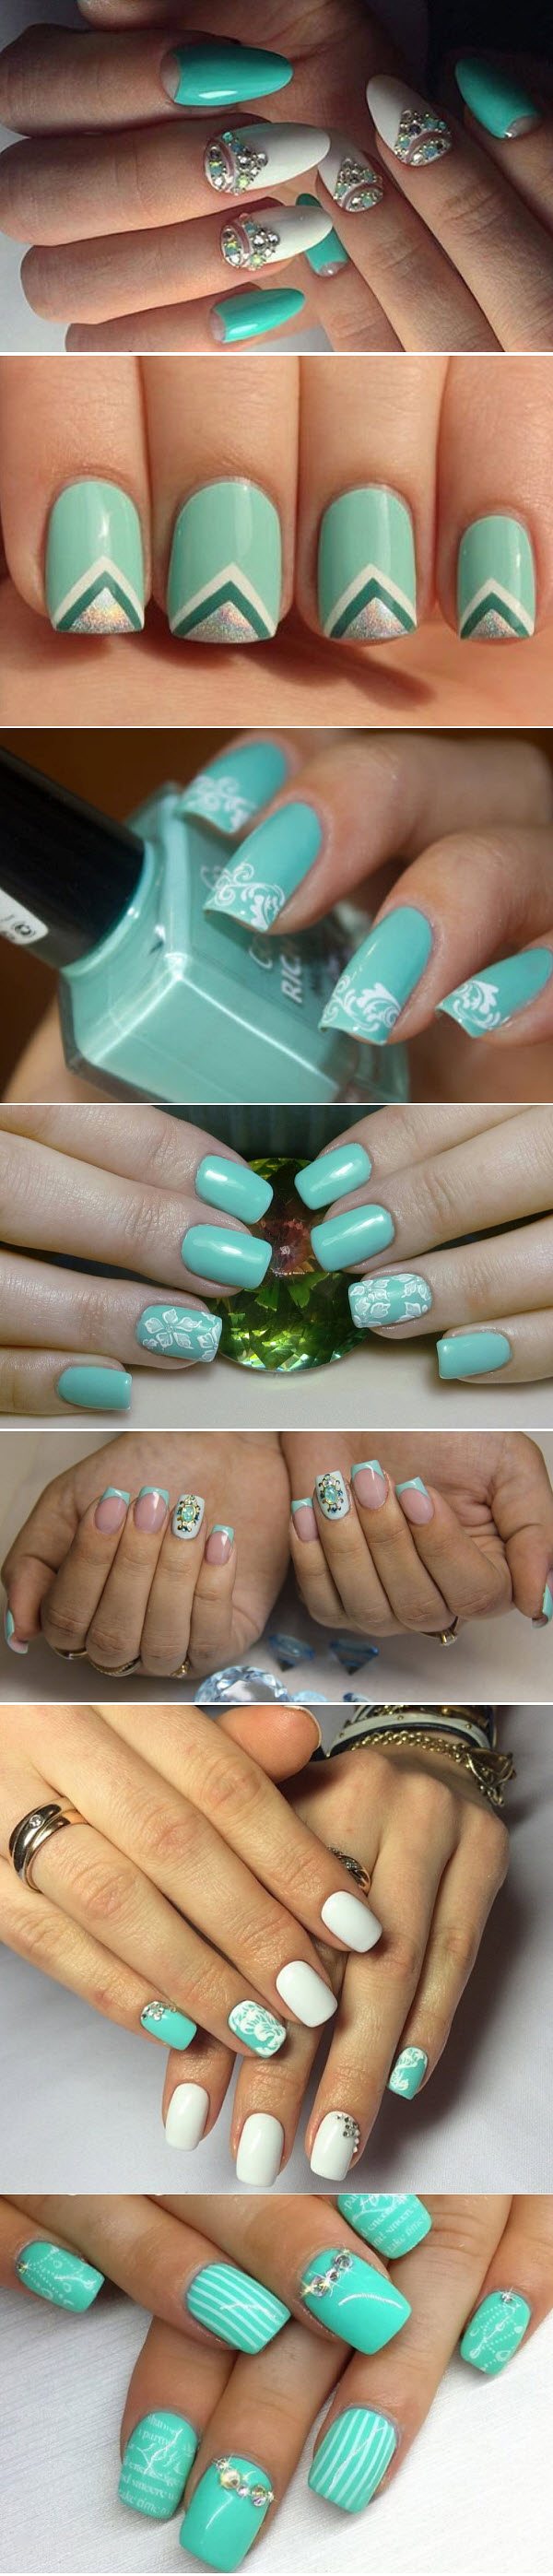 Find All China Products On Sale from Belen Cute Nail store 39